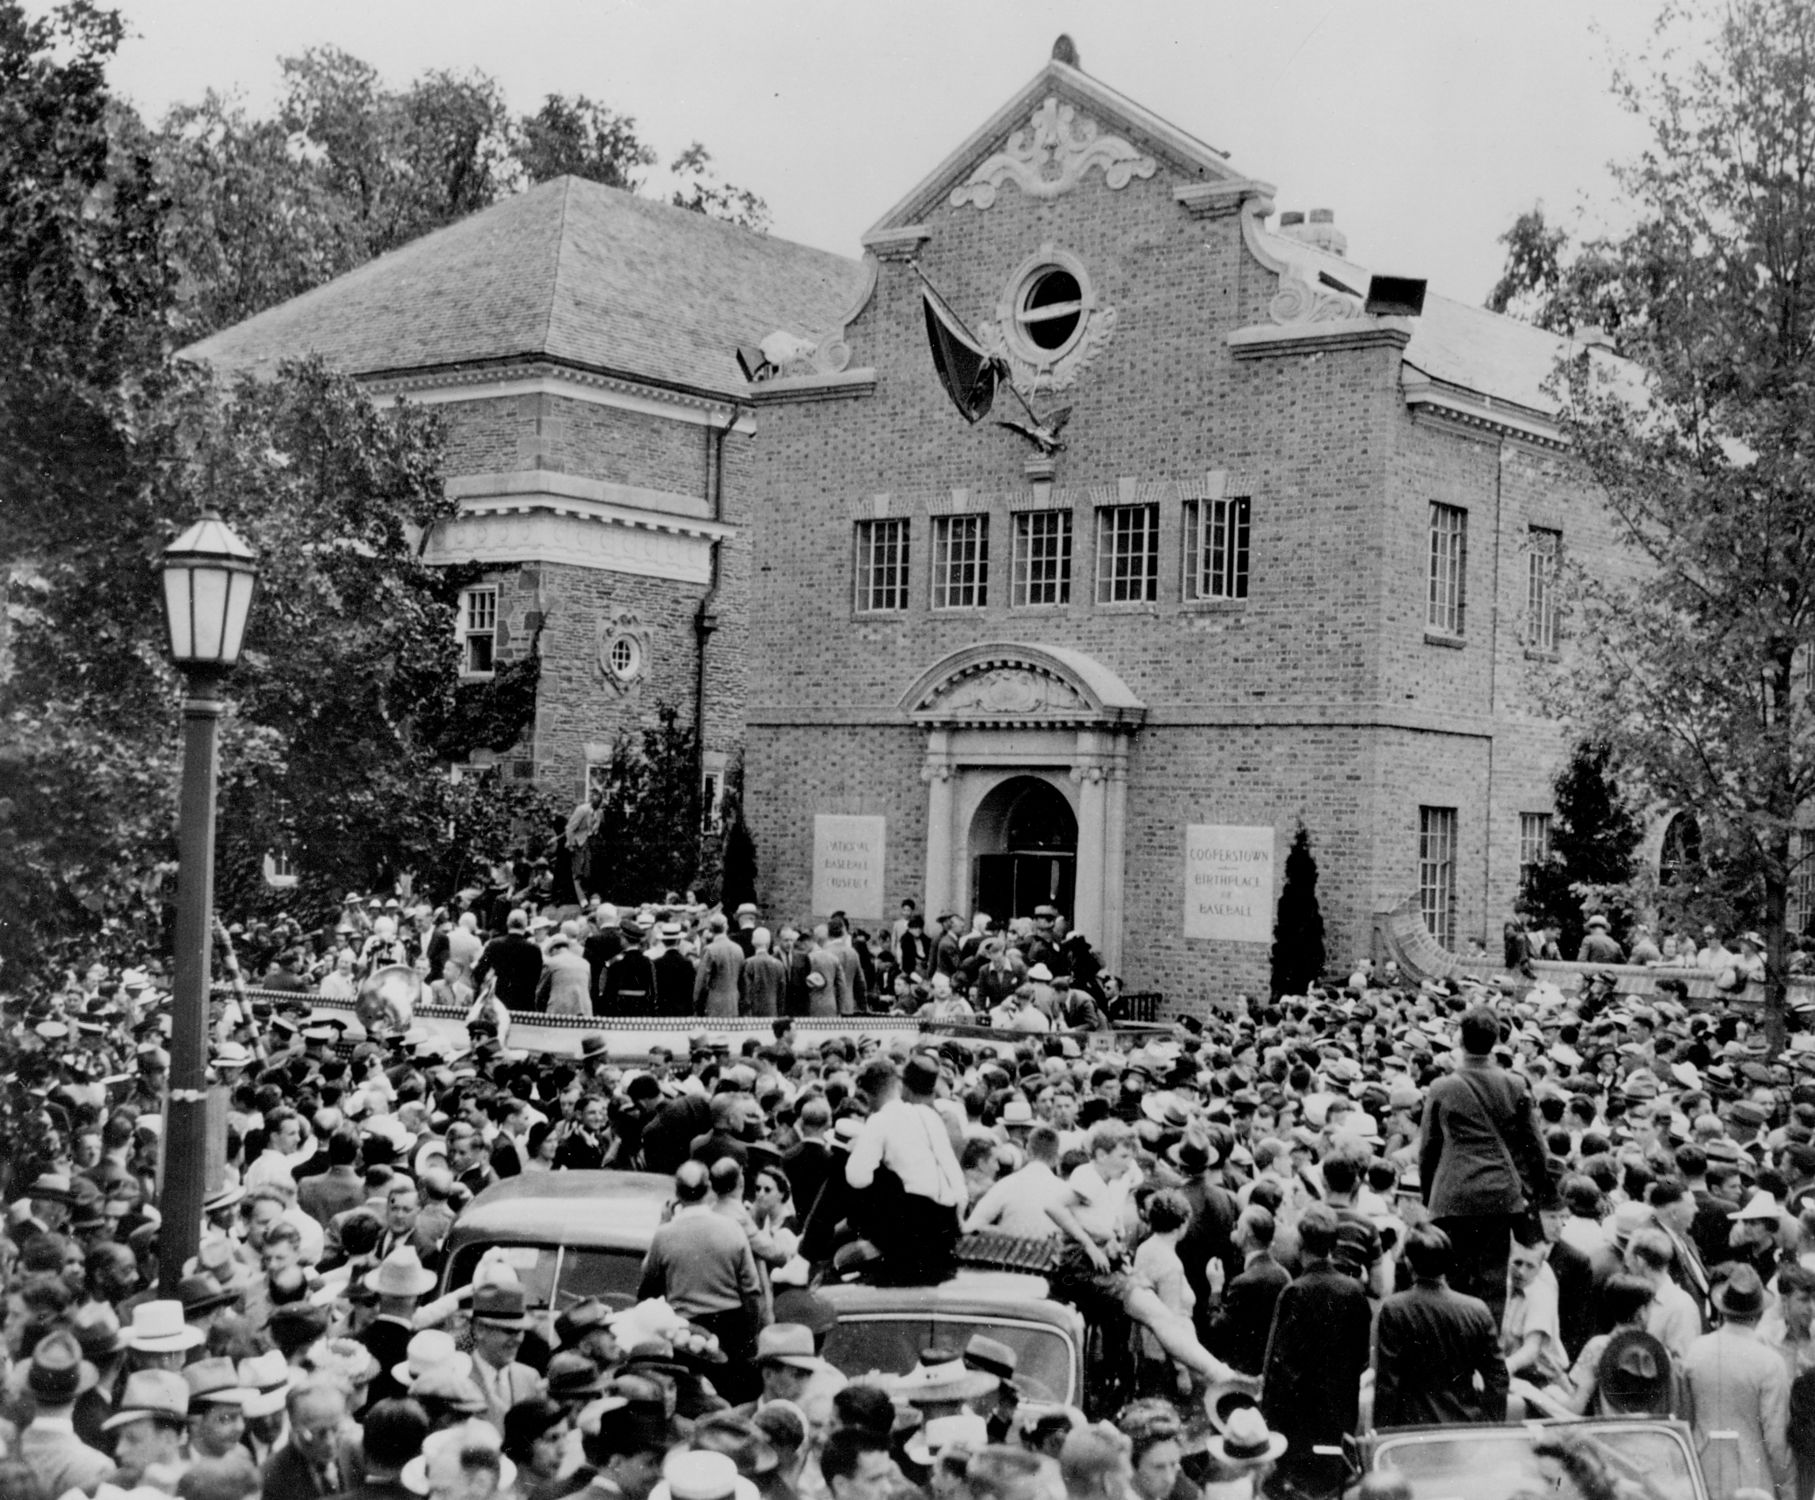 The baseball world dedicates the National Baseball Hall of Fame and Museum,  June 12, 1939 - BL-2535-89 (National Baseball Hall of Fame Library)